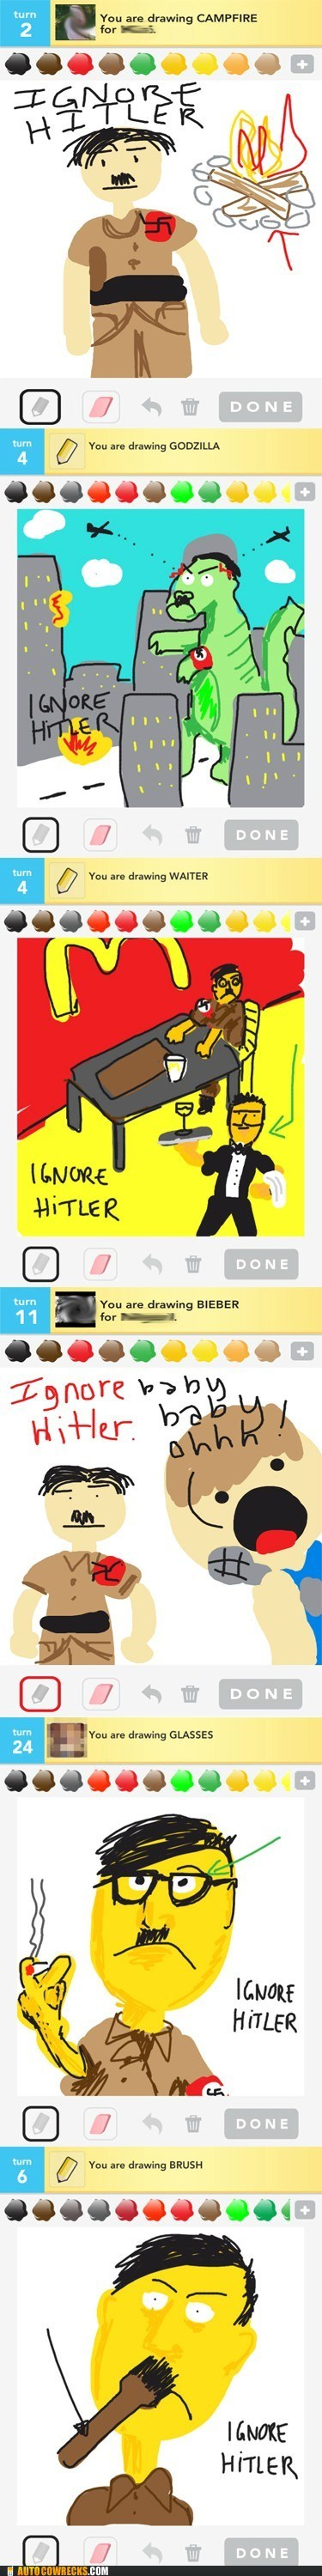 AutocoWrecks,draw something,german fascist dictators,ignore hitler